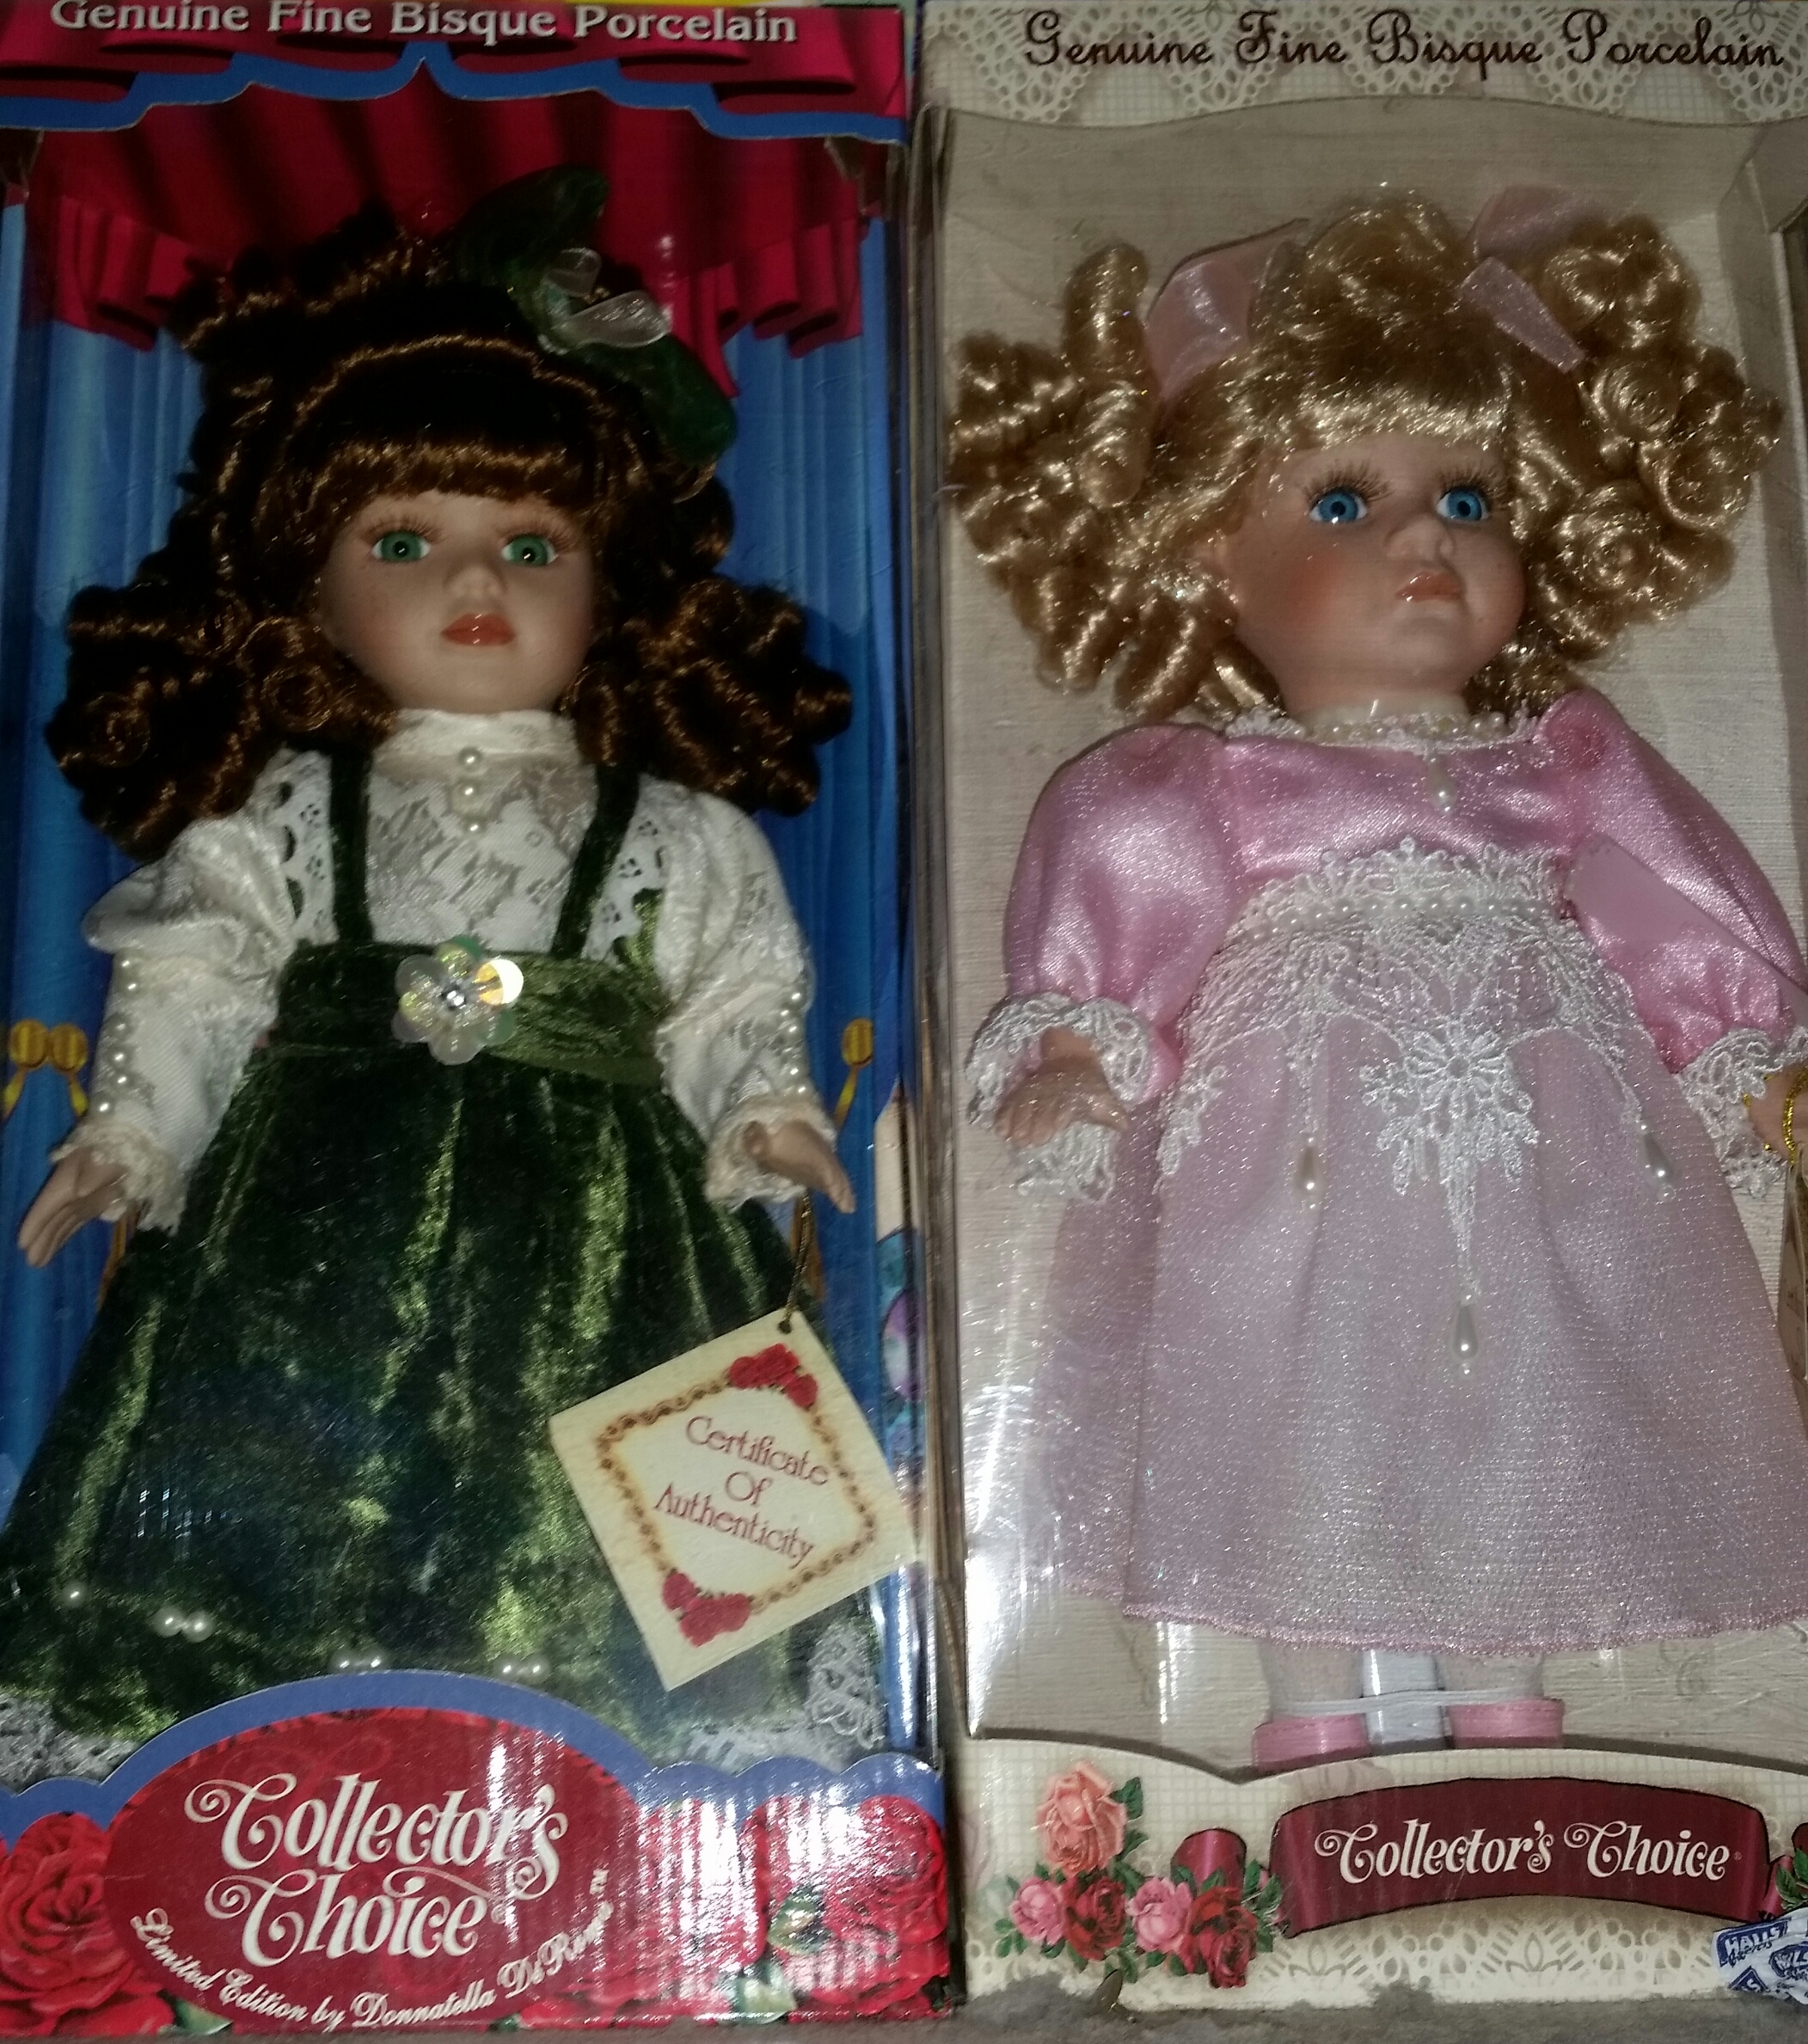 Are Donnatella De Roma Collection (Genuine Fine Bisque Porcelain) dolls worth anything? They